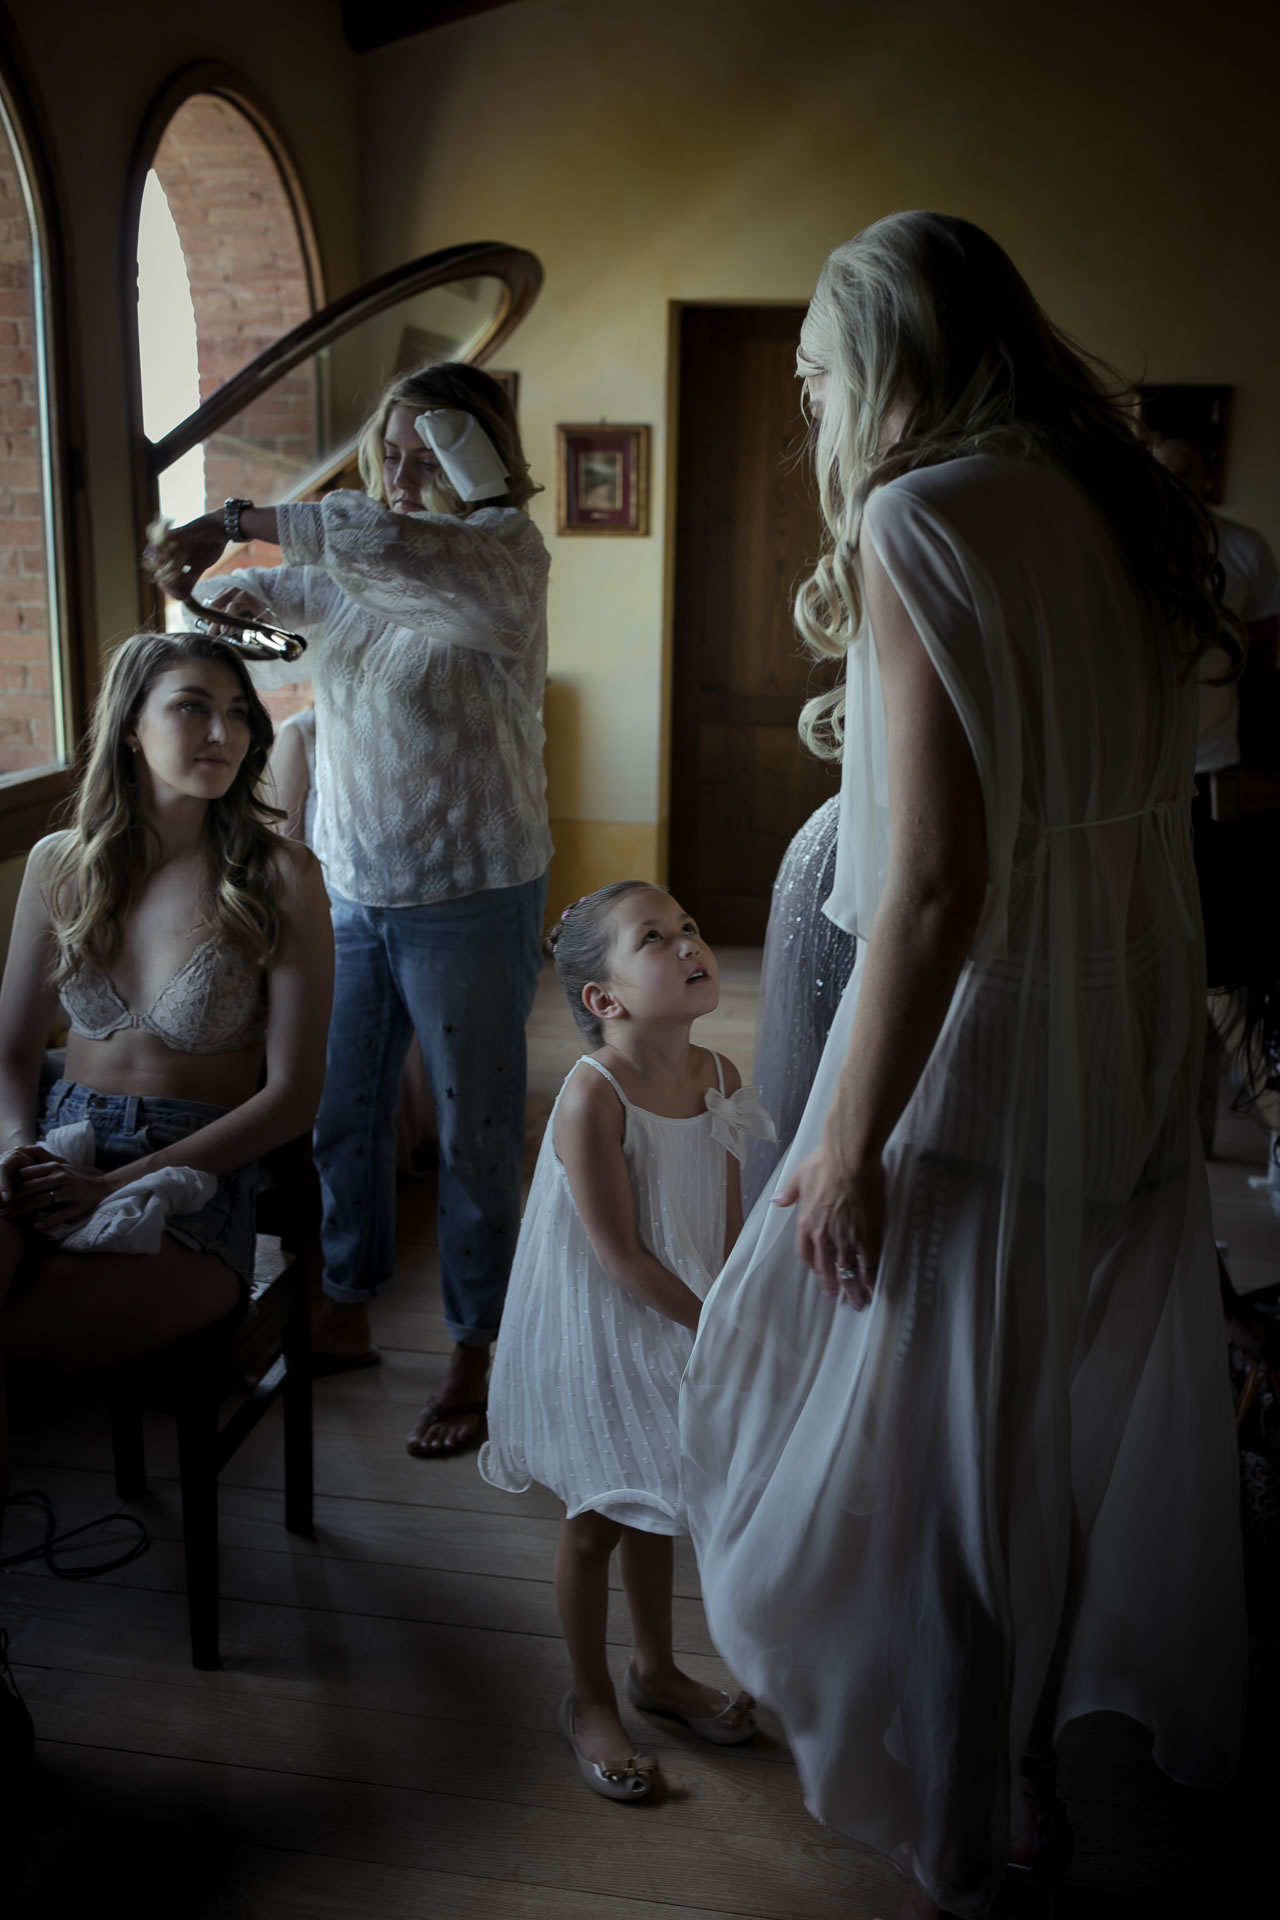 Getting Ready - 7 :: Exciting wedding in the countryside of Siena :: Luxury wedding photography - 6 :: Getting Ready - 7